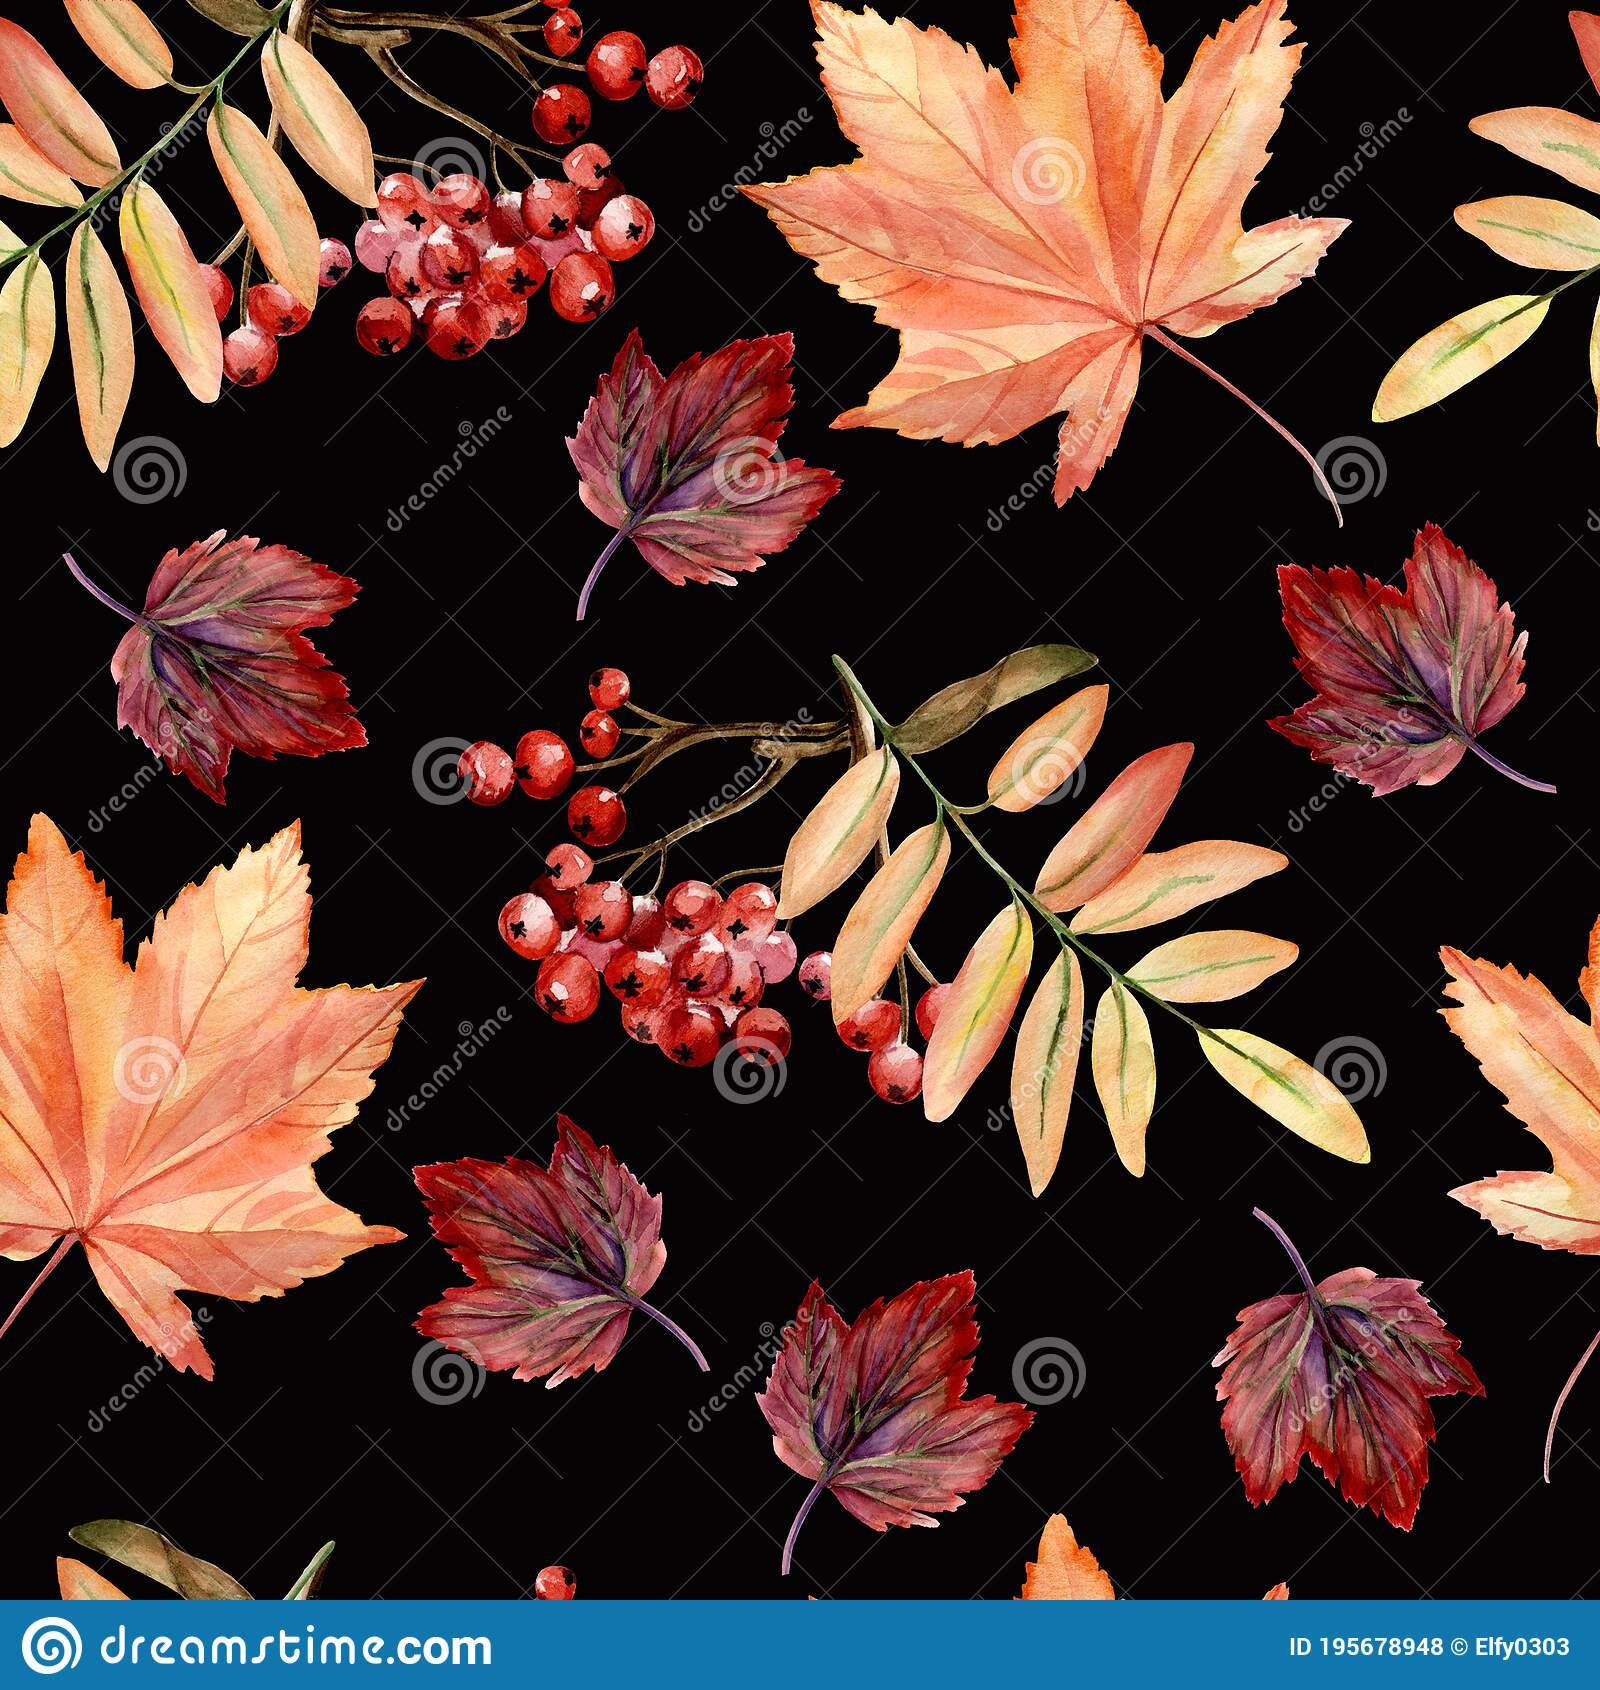 Watercolor Hand Painted Seamless Pattern With Autumn Leaves Rowan Branches On Black Background Perfect For Fall Or Thanksgiving Stock Illustration Illustration Of Digital Park 195678948